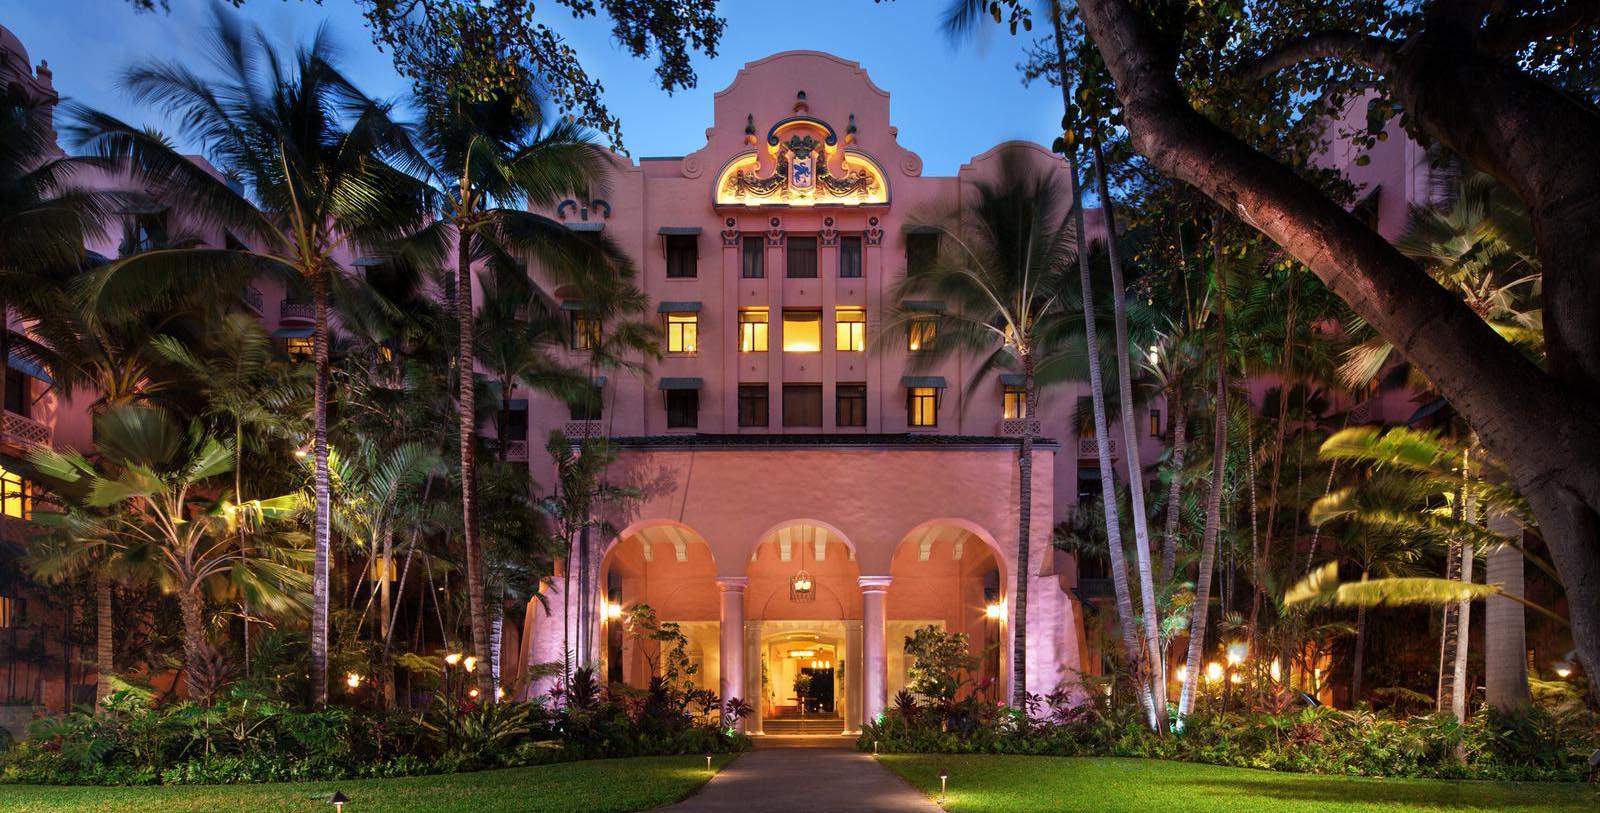 Image of Hotel Exterior The Royal Hawaiian, A Luxury Collection Resort, 1927, Member of Historic Hotels of America, in Honolulu, Hawaii, Overview